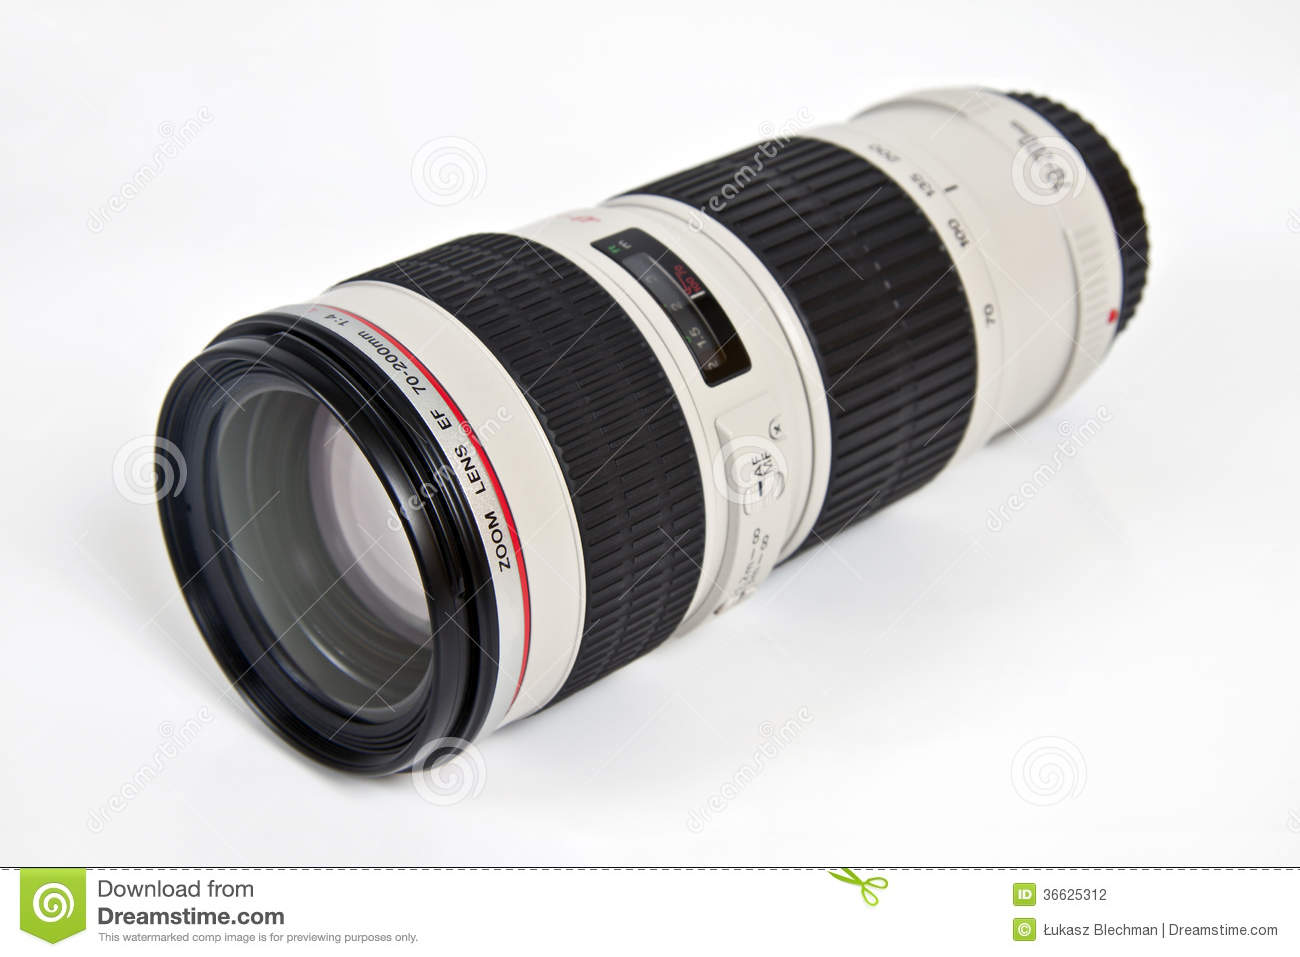 how to carry a 70 200mm lens